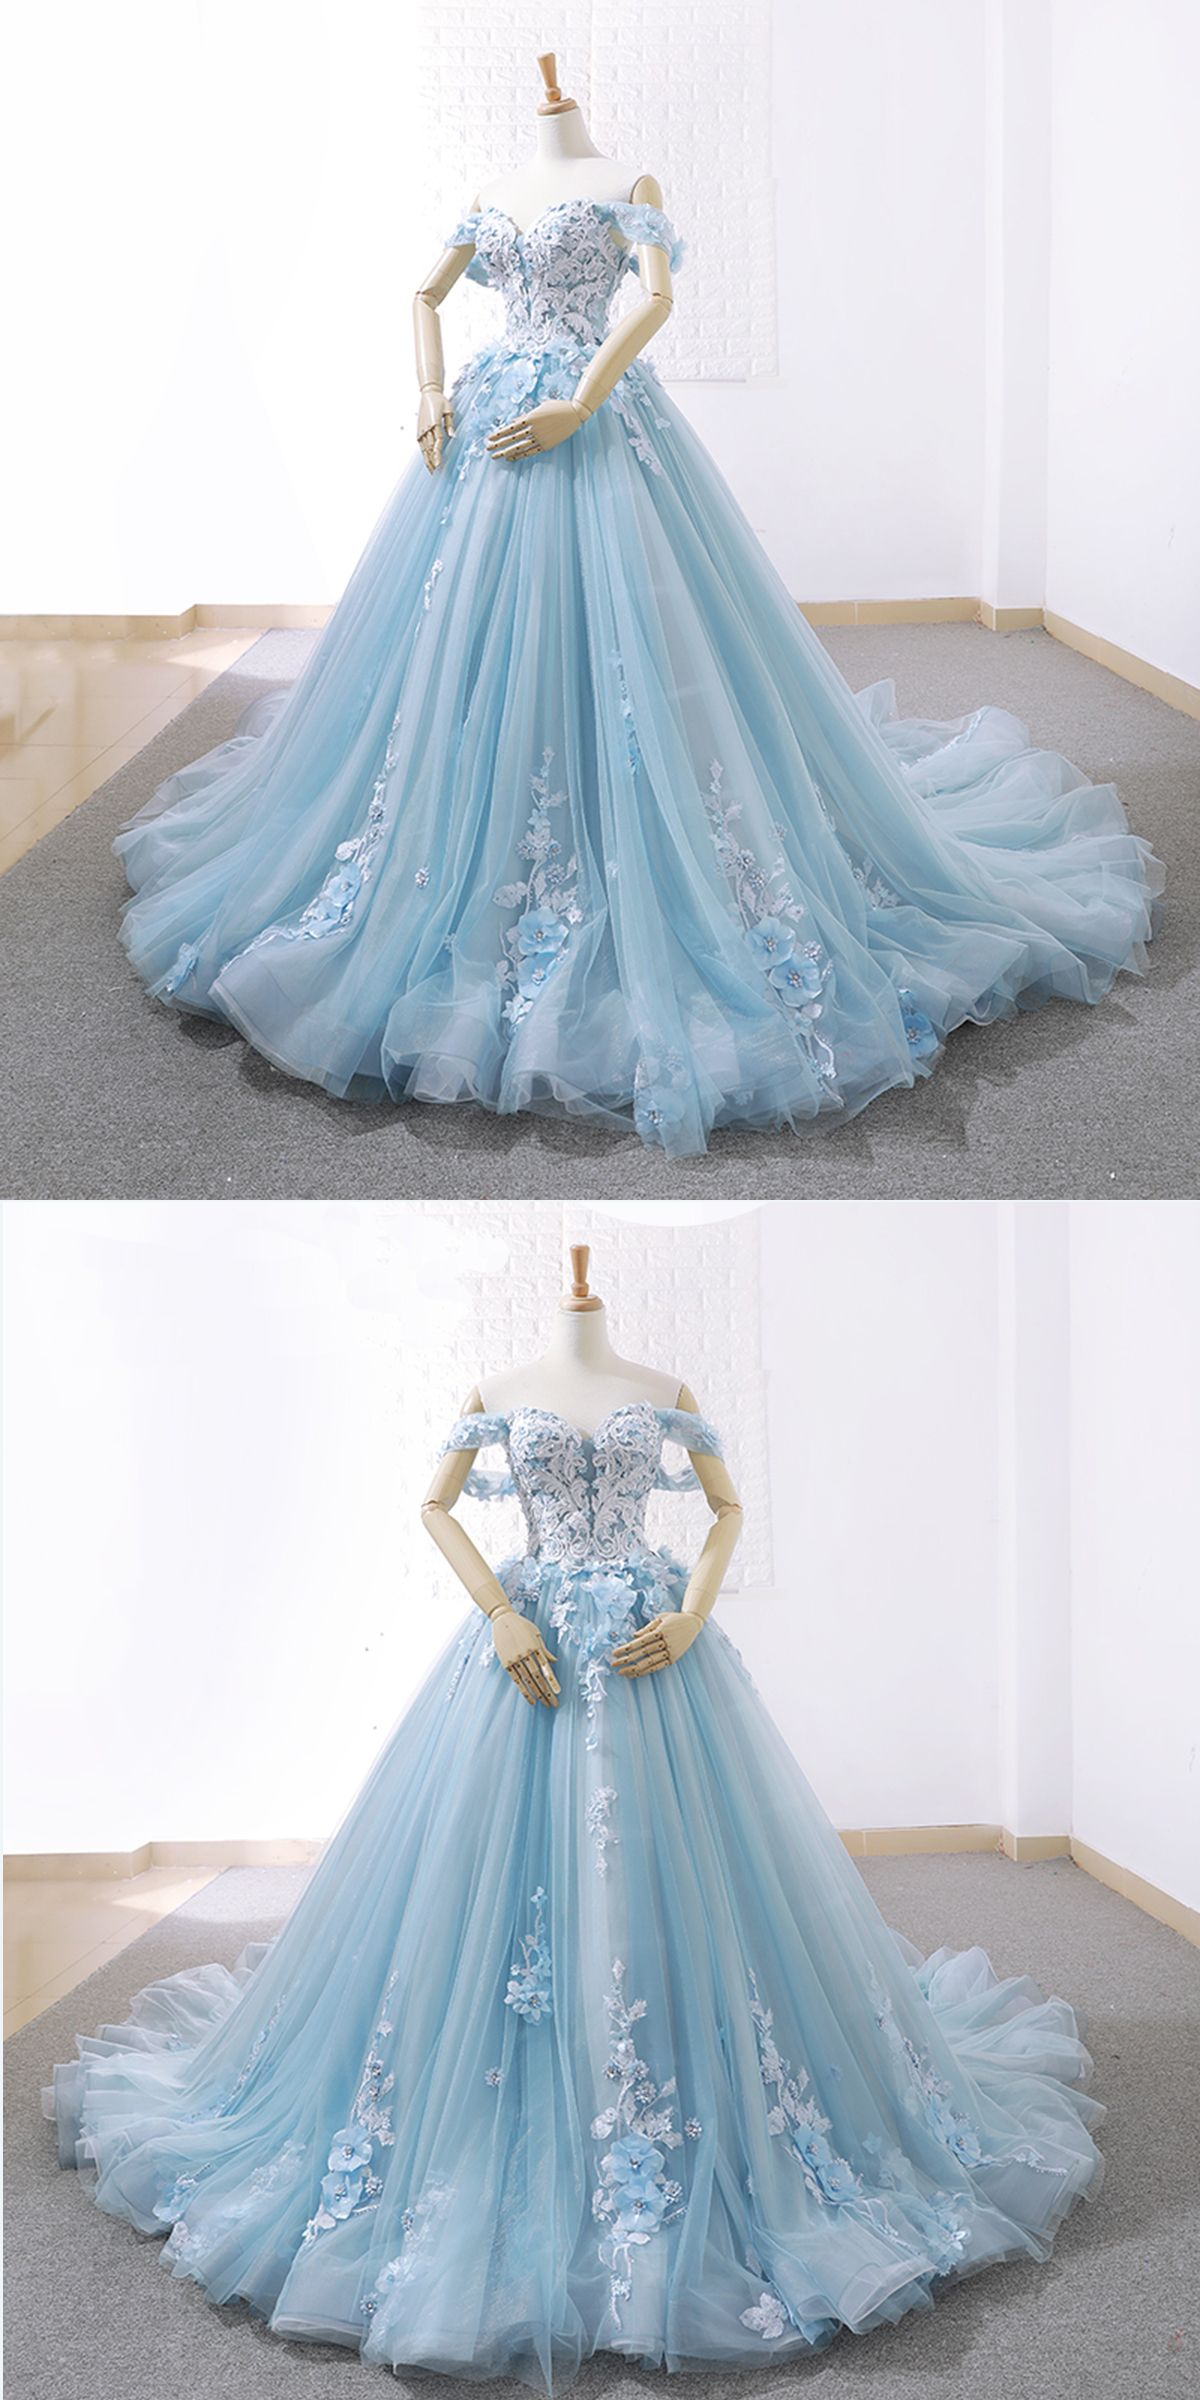 Blue Prom Dress Lace Appliqued Tulle Prom Dress Long Evening Dress Wedding Gown Wedding White Evening Dress Evening Dresses With Sleeves Dresses [ 2400 x 1200 Pixel ]